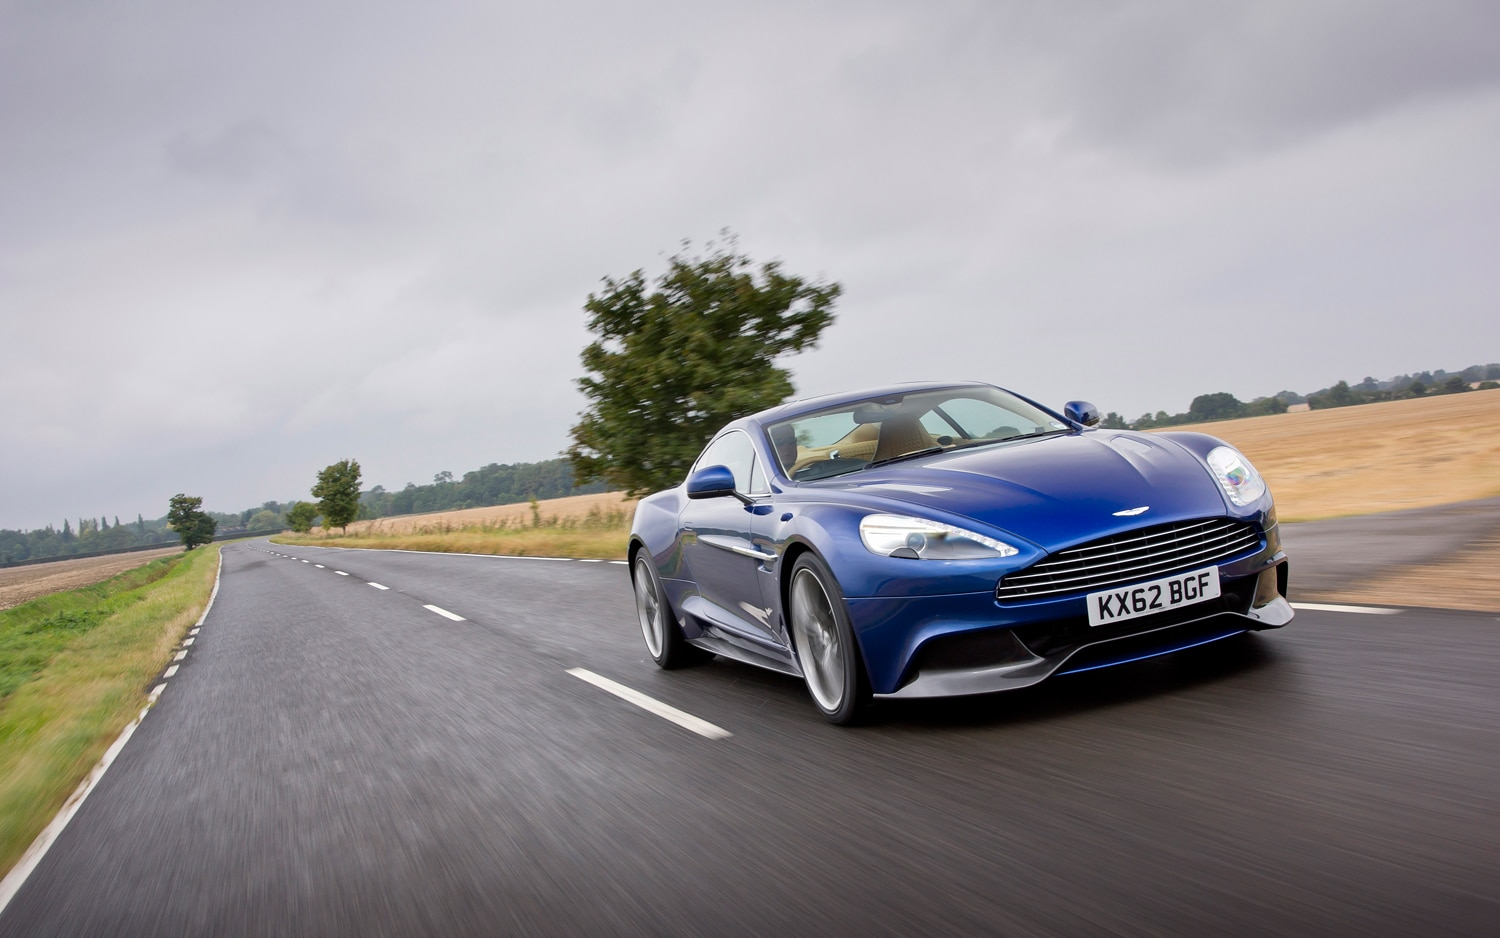 2014 Aston Martin Vanquish Front Right View1